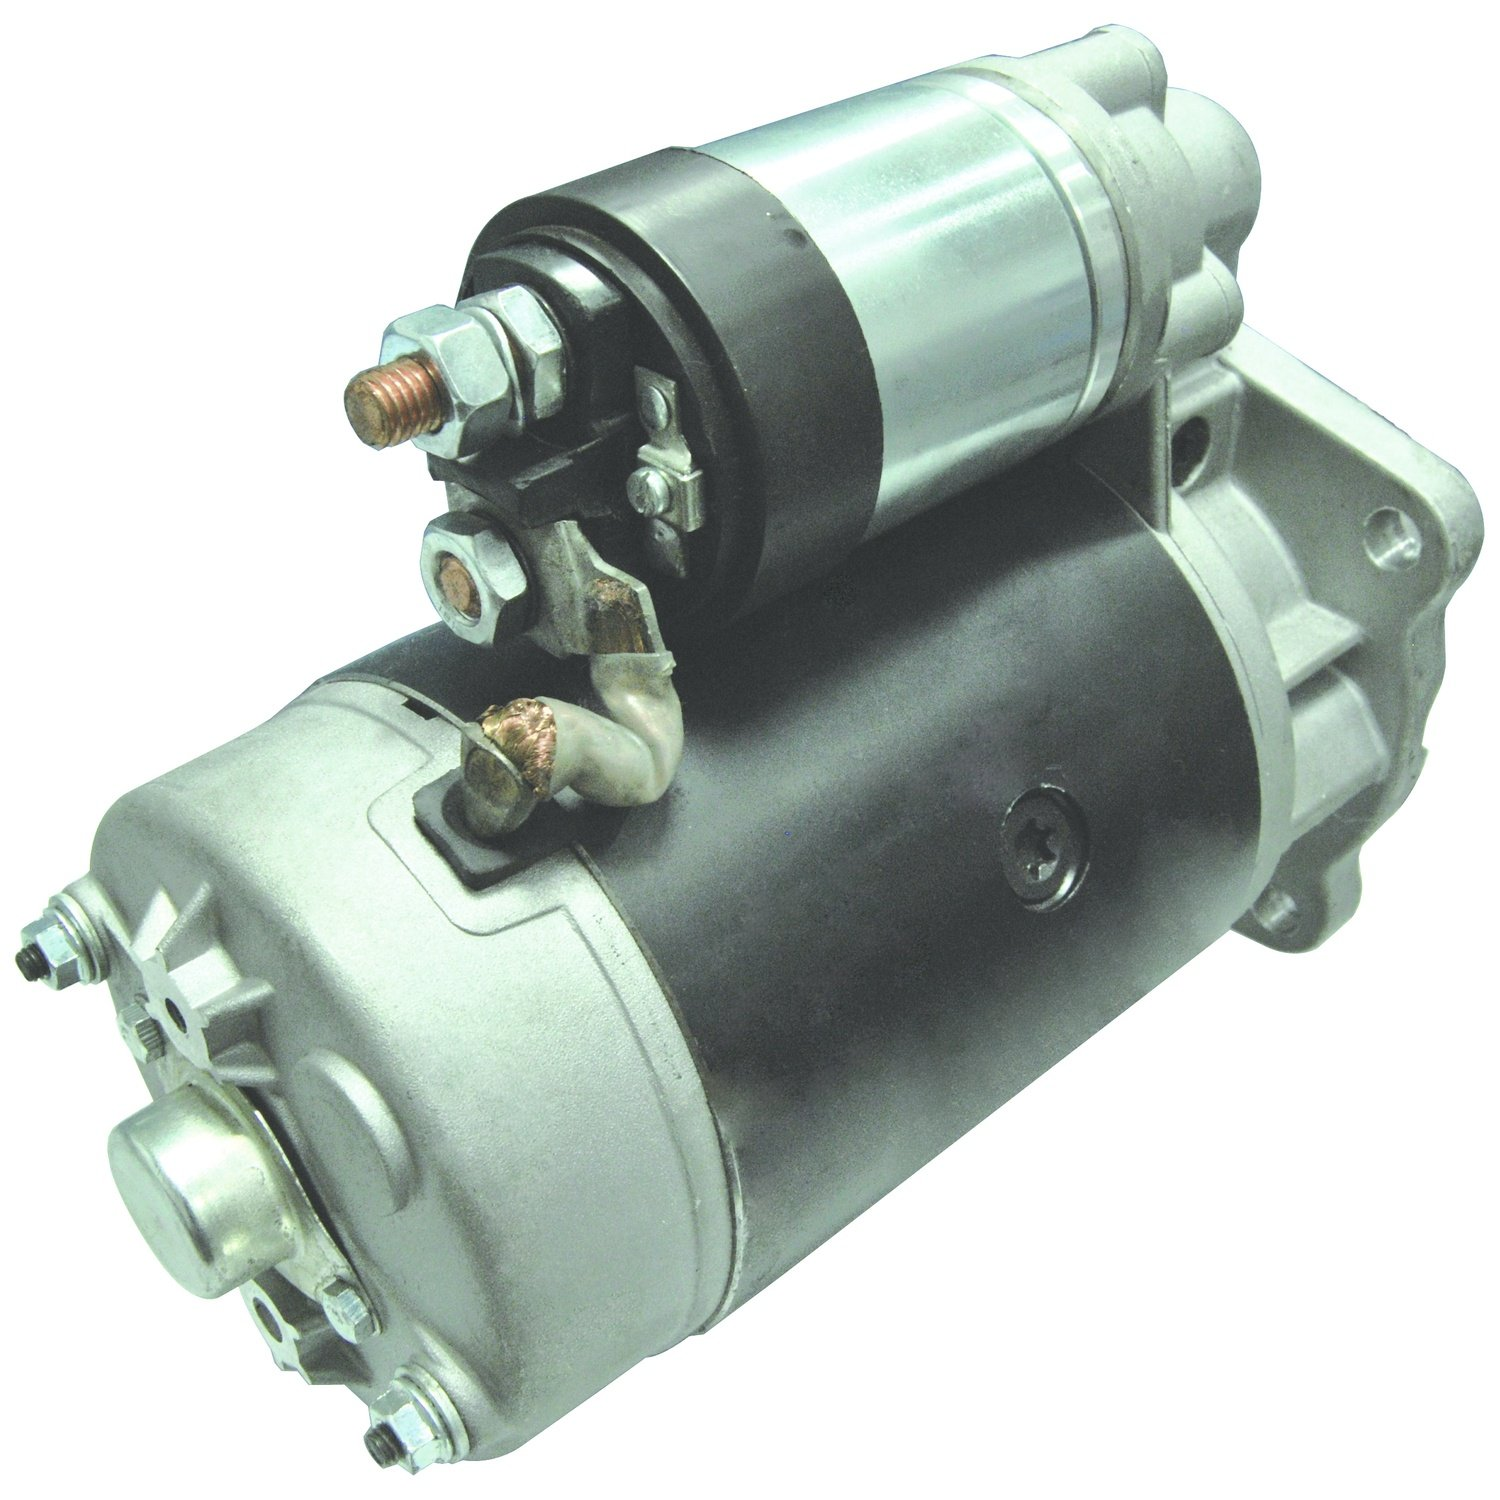 Amazon.com: NEW DEUTZ-FAHR AGRICULTURAL TRACTOR STARTER F4L912-913 F3L912-913 1986-1994 0001369014, 0001369024: Automotive